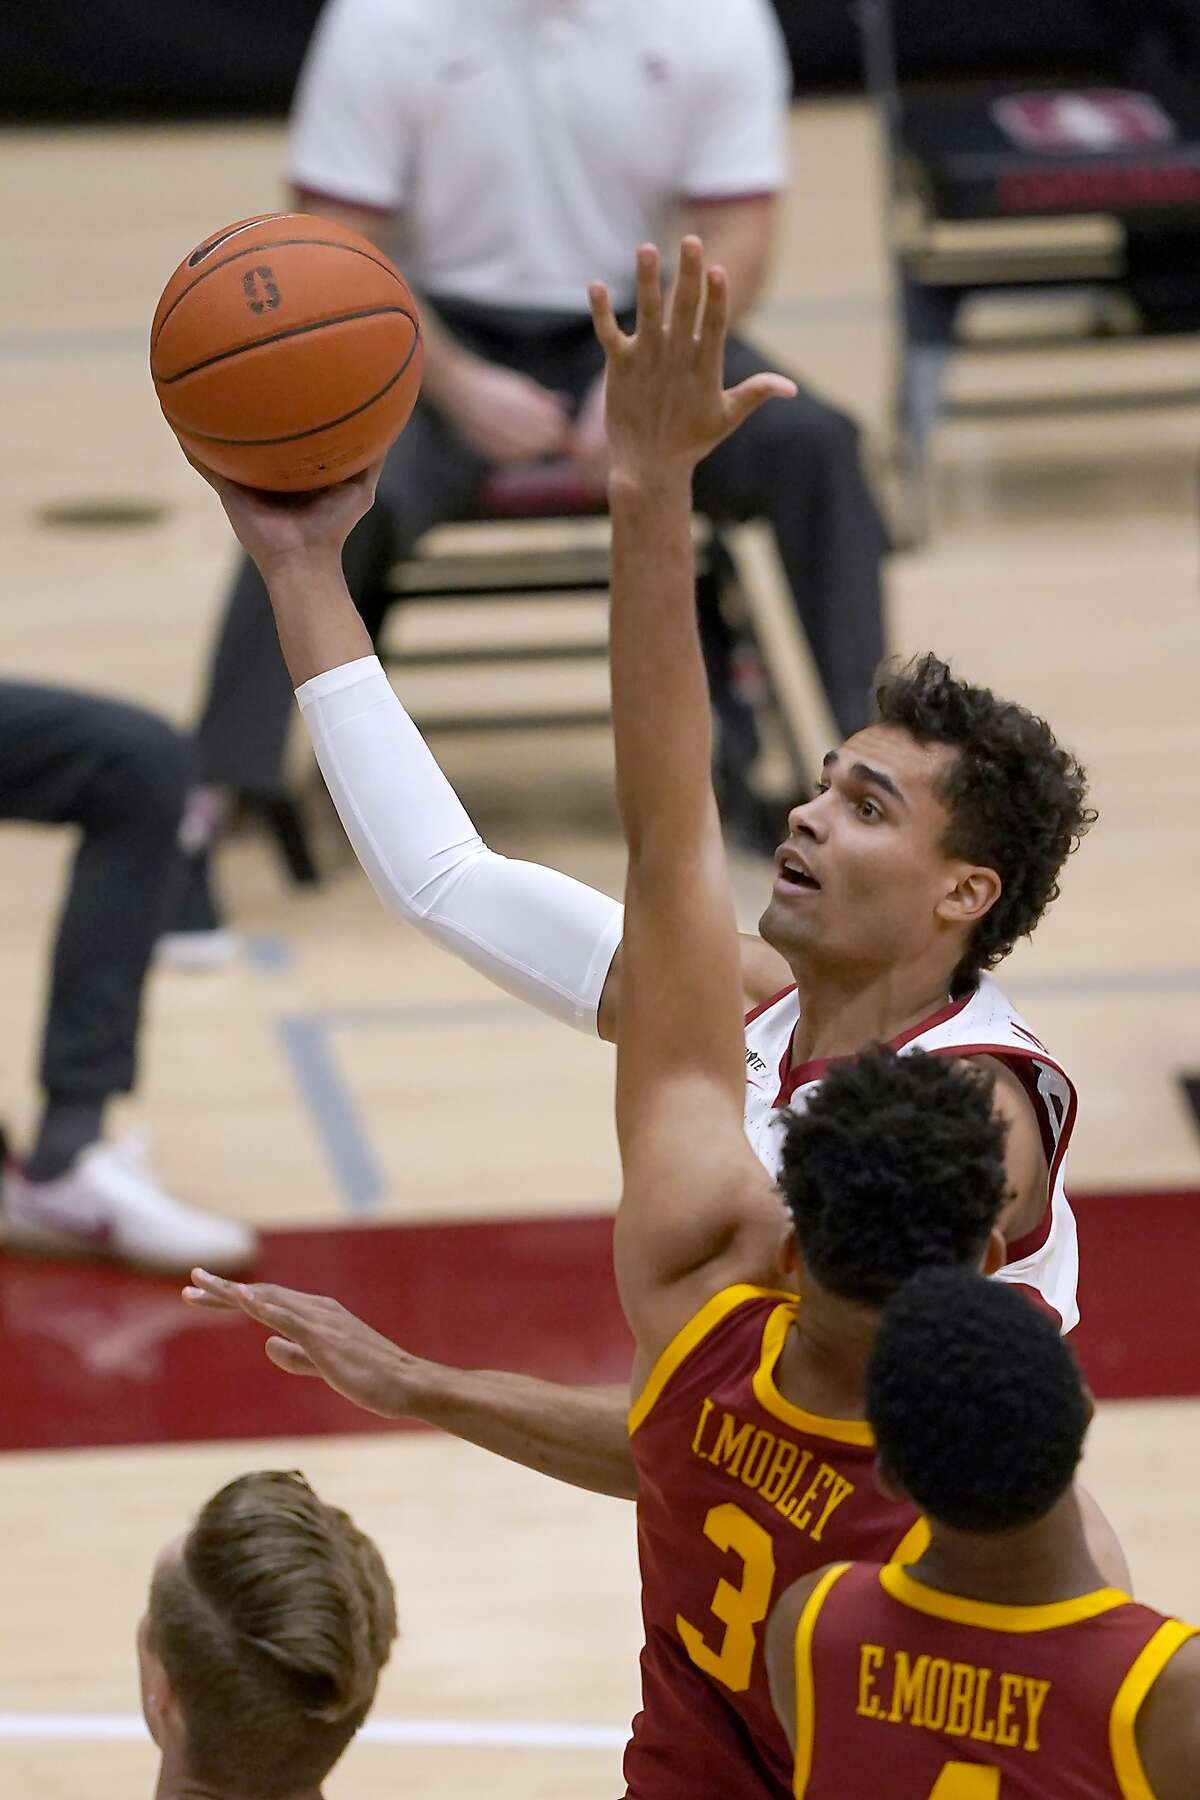 Stanford forward Oscar da Silva drives to the basket against Southern California forward Isaiah Mobley (3) during the first half of an NCAA college basketball game in Stanford, Calif., Tuesday, Feb. 2, 2021. (AP Photo/Tony Avelar)